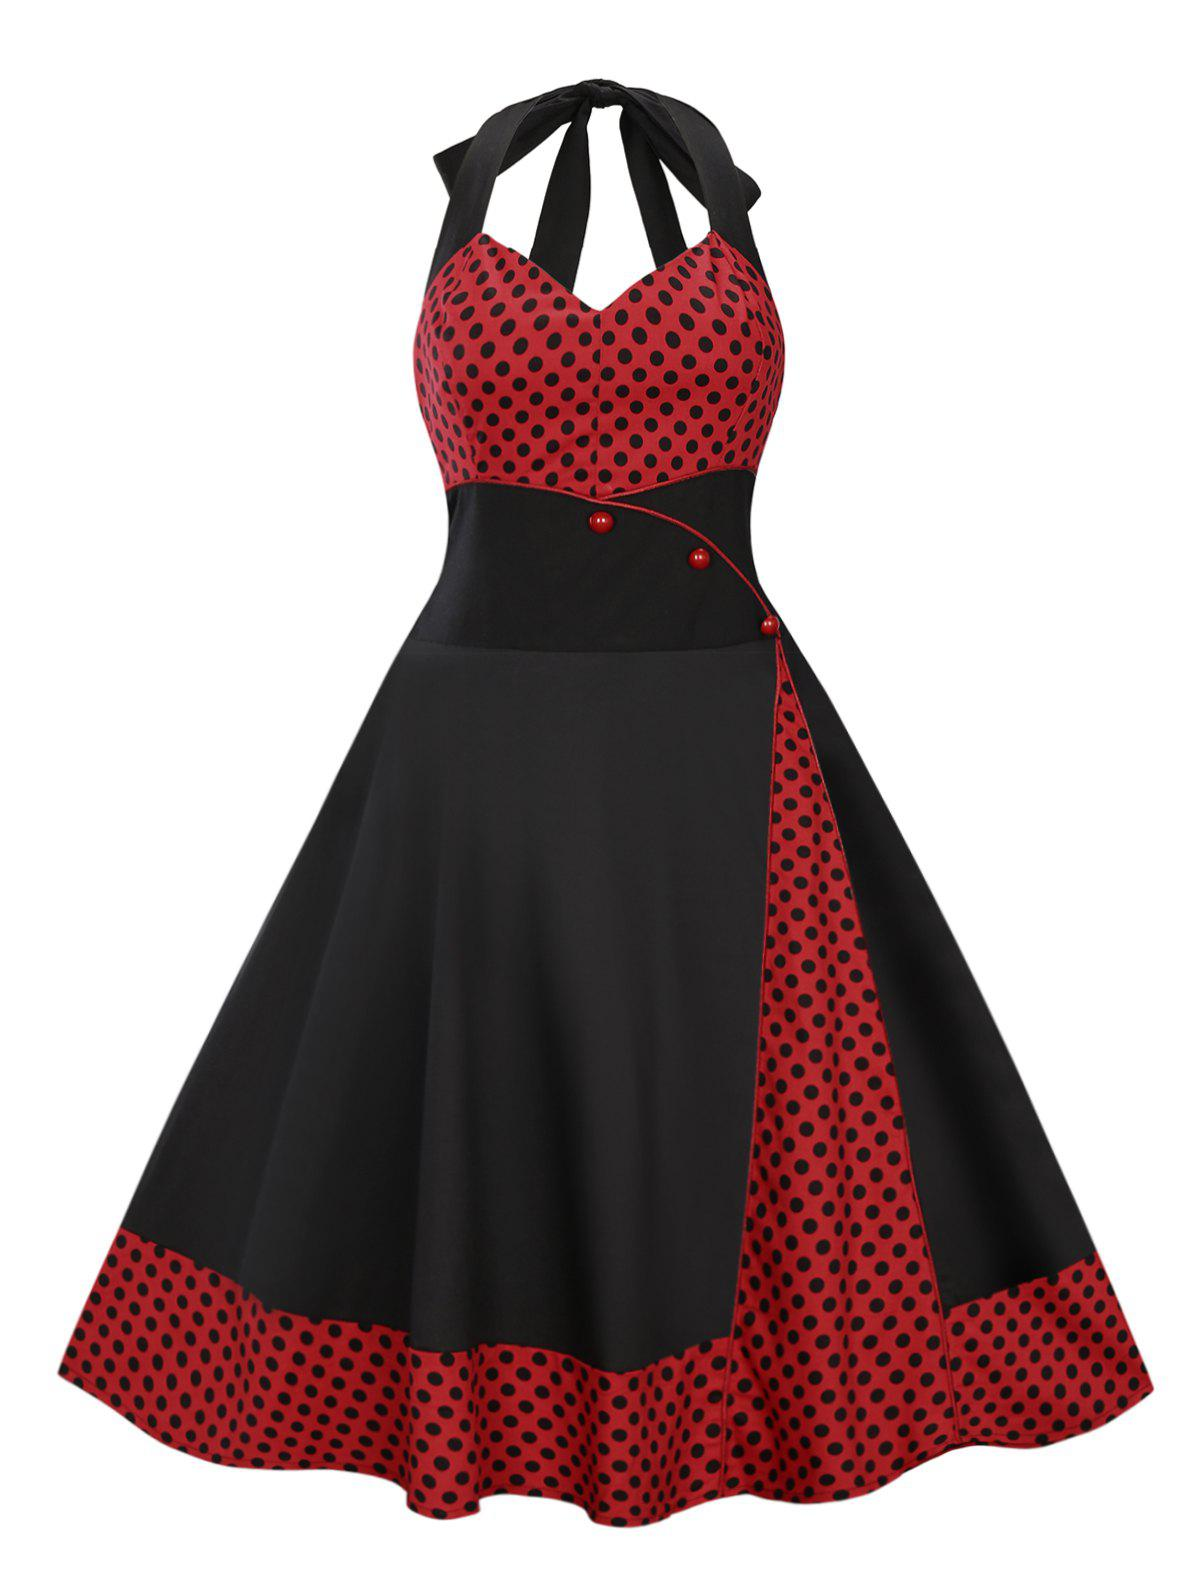 Plus Size Halter Midi Polka Dot DressWOMEN<br><br>Size: 4XL; Color: BLACK; Style: Vintage; Material: Cotton Blend,Polyester; Silhouette: Ball Gown; Dresses Length: Mid-Calf; Neckline: Halter; Sleeve Length: Sleeveless; Waist: High Waisted; Embellishment: Button,Vintage; Pattern Type: Polka Dot,Print; With Belt: No; Season: Spring,Summer; Weight: 0.4300kg; Package Contents: 1 x Dress;